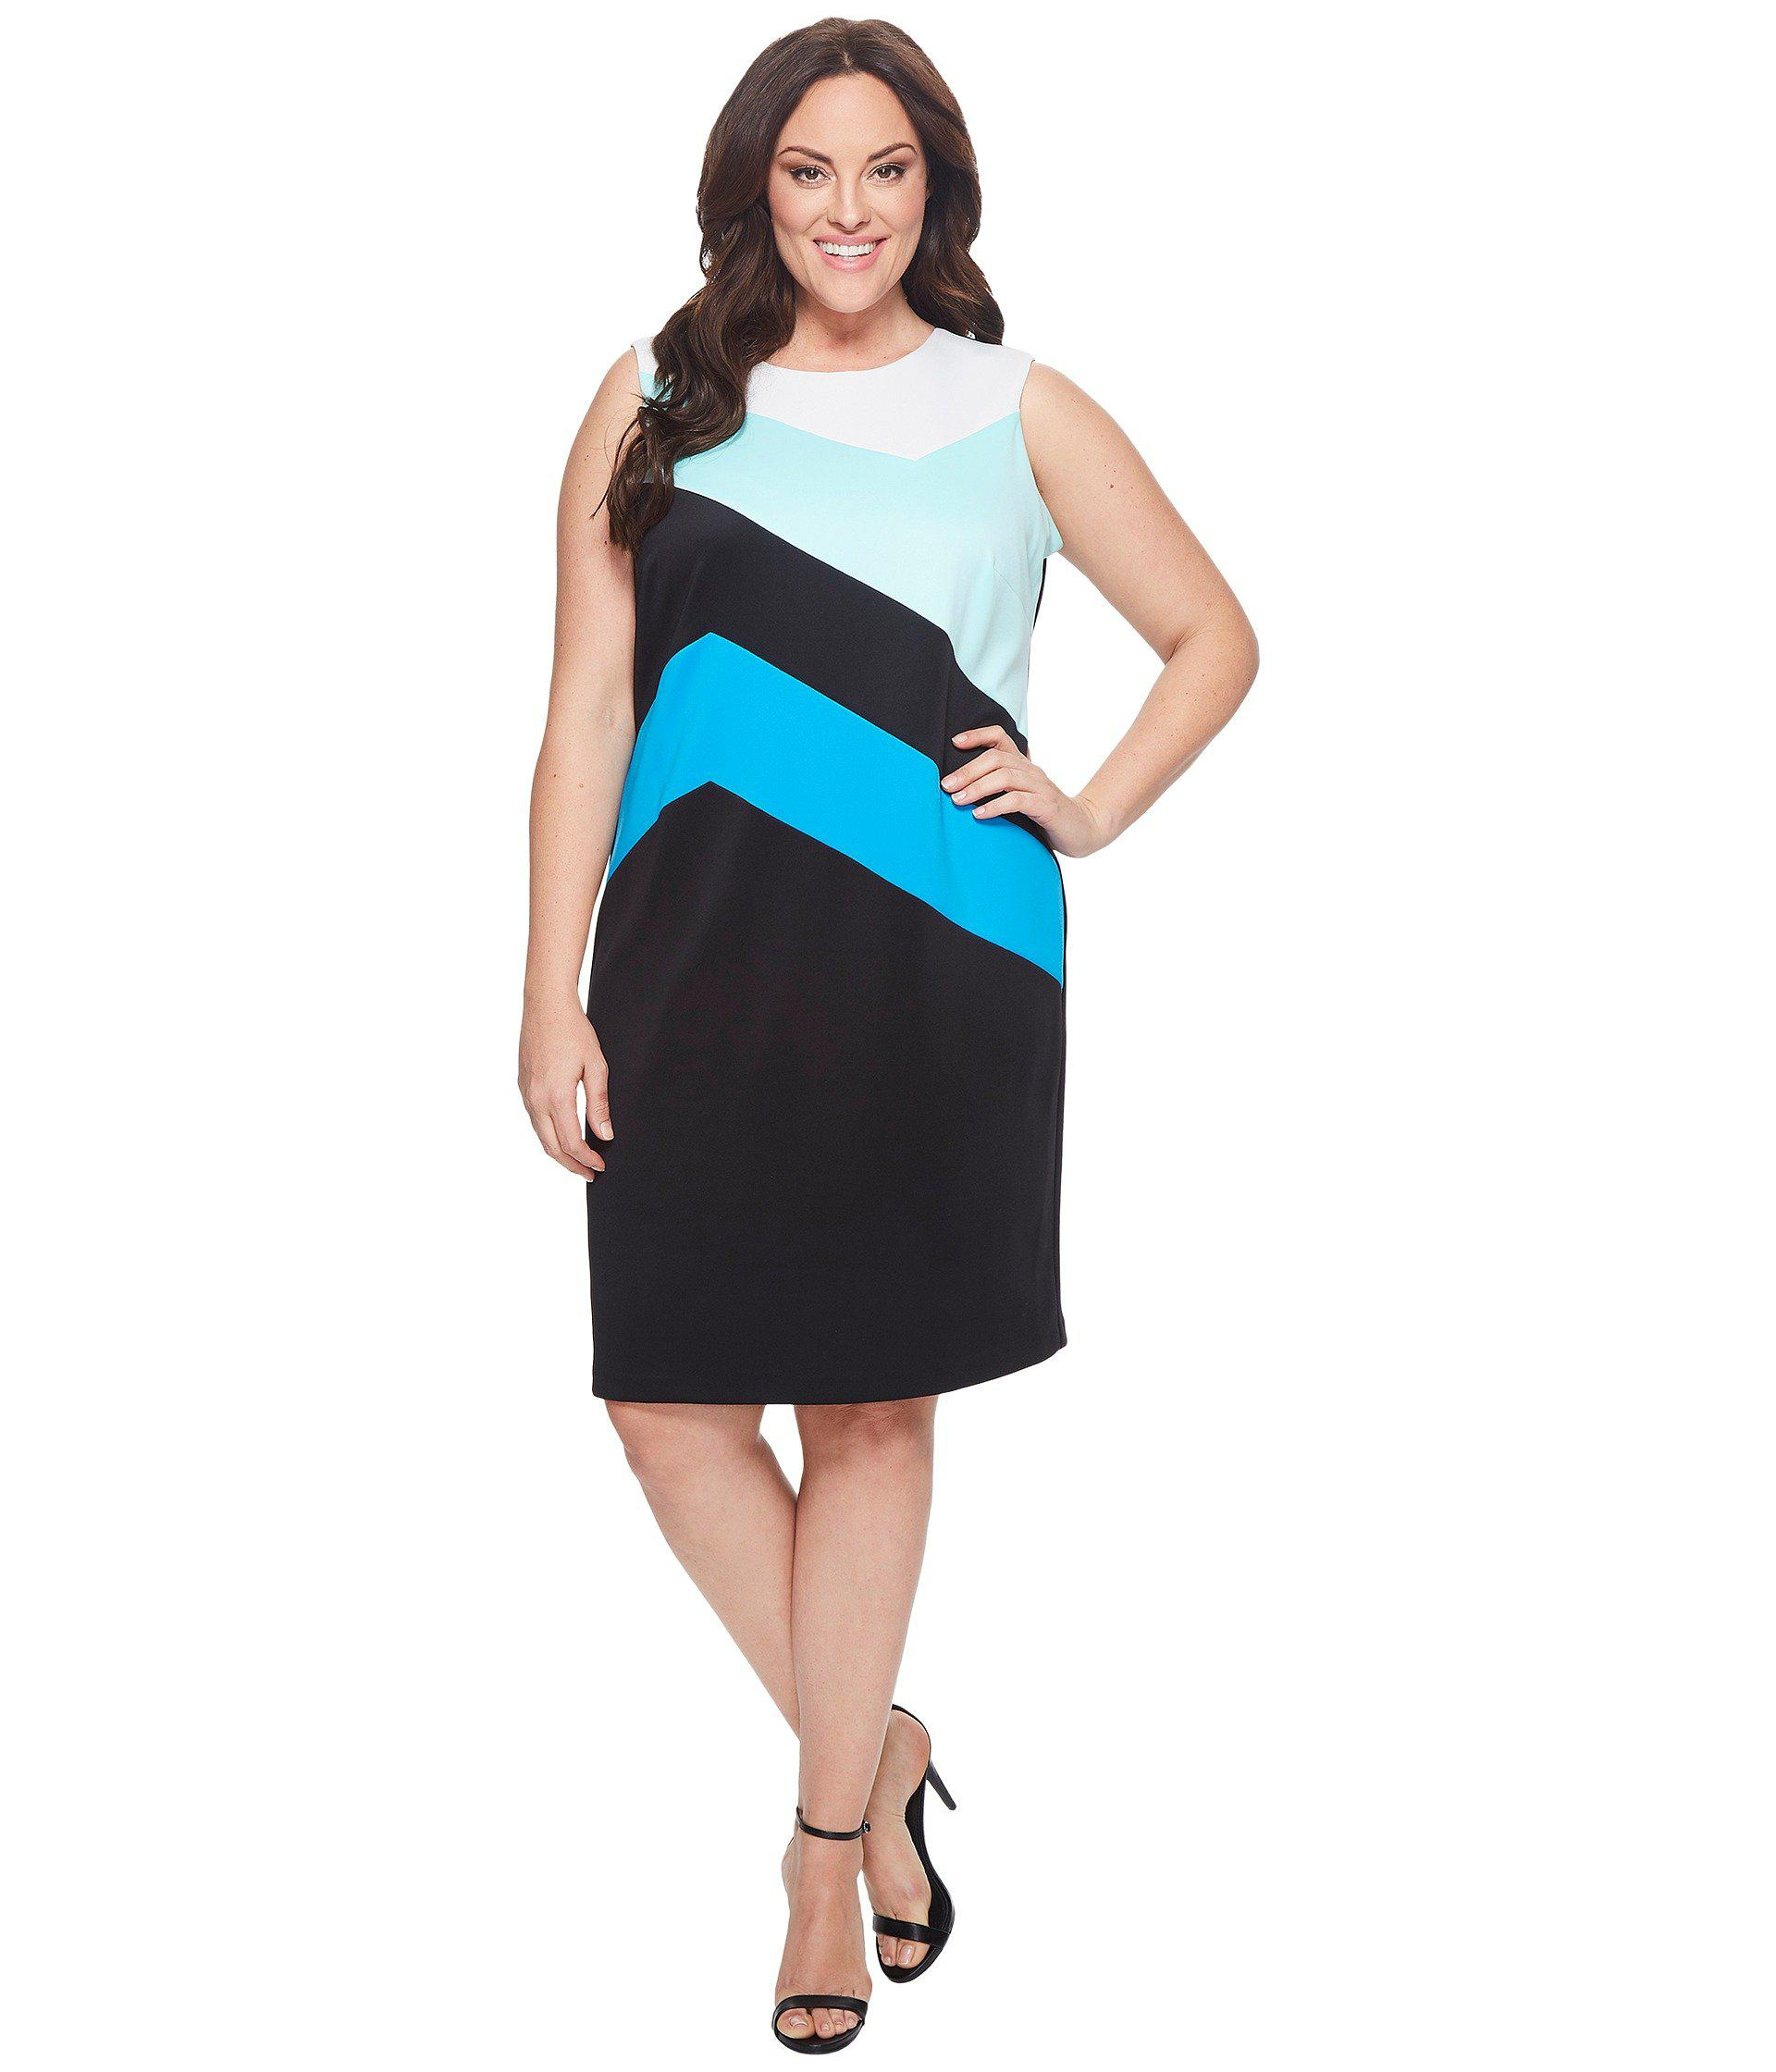 f2dfe1dbb6a Lyst - Calvin Klein Plus Size Color Block Sheath Dress in Black ...